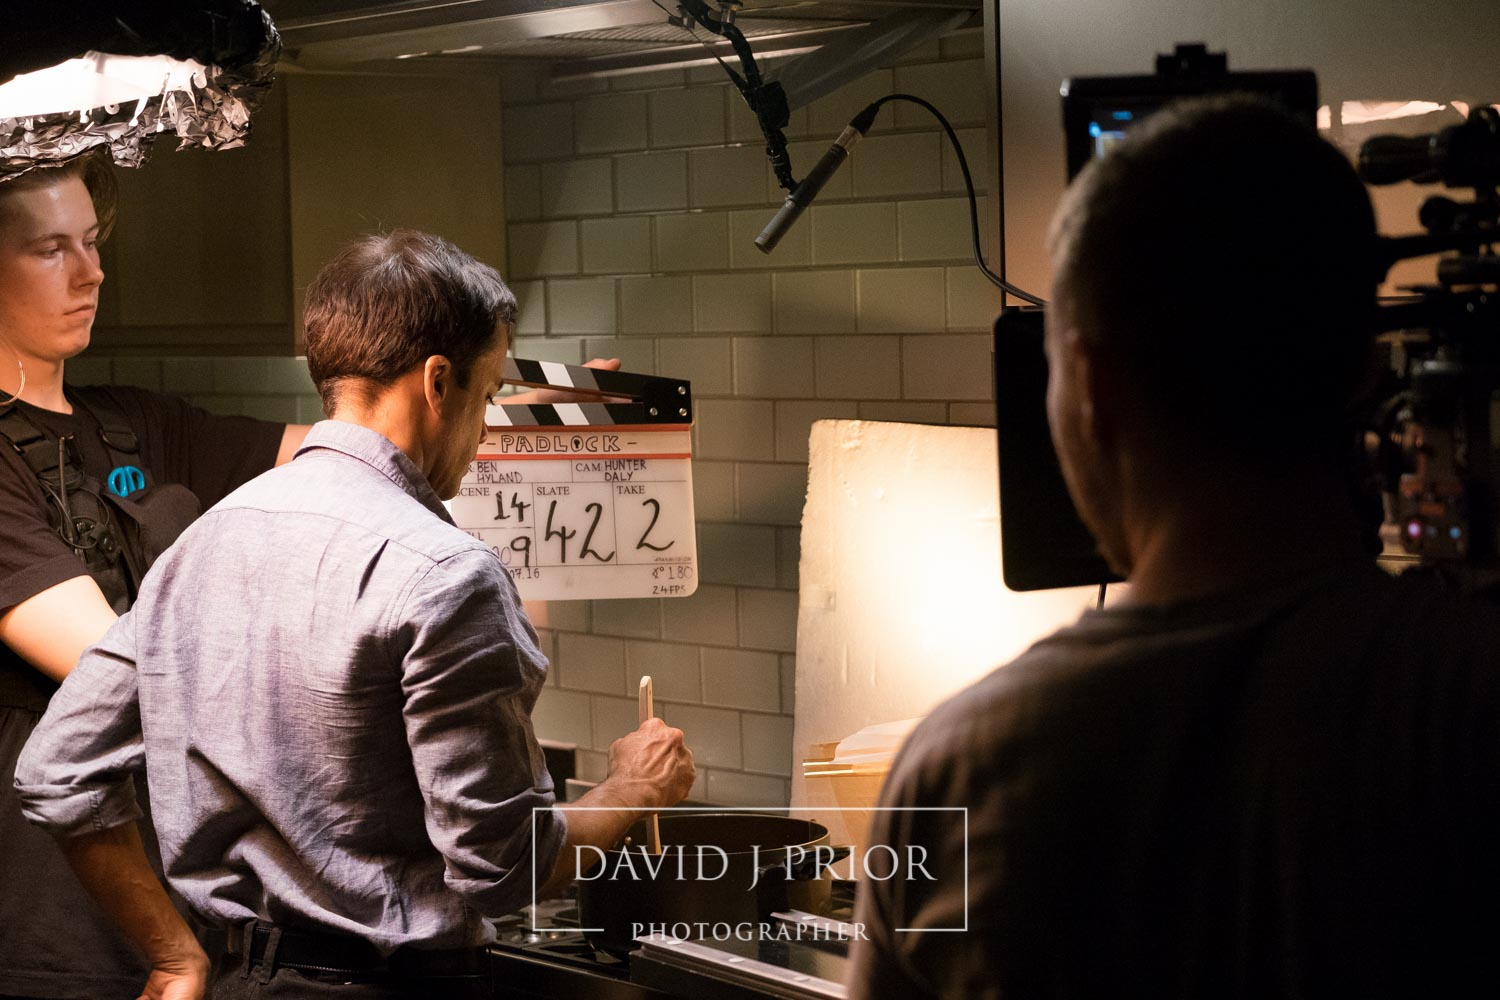 Unit Stills Photographer 015